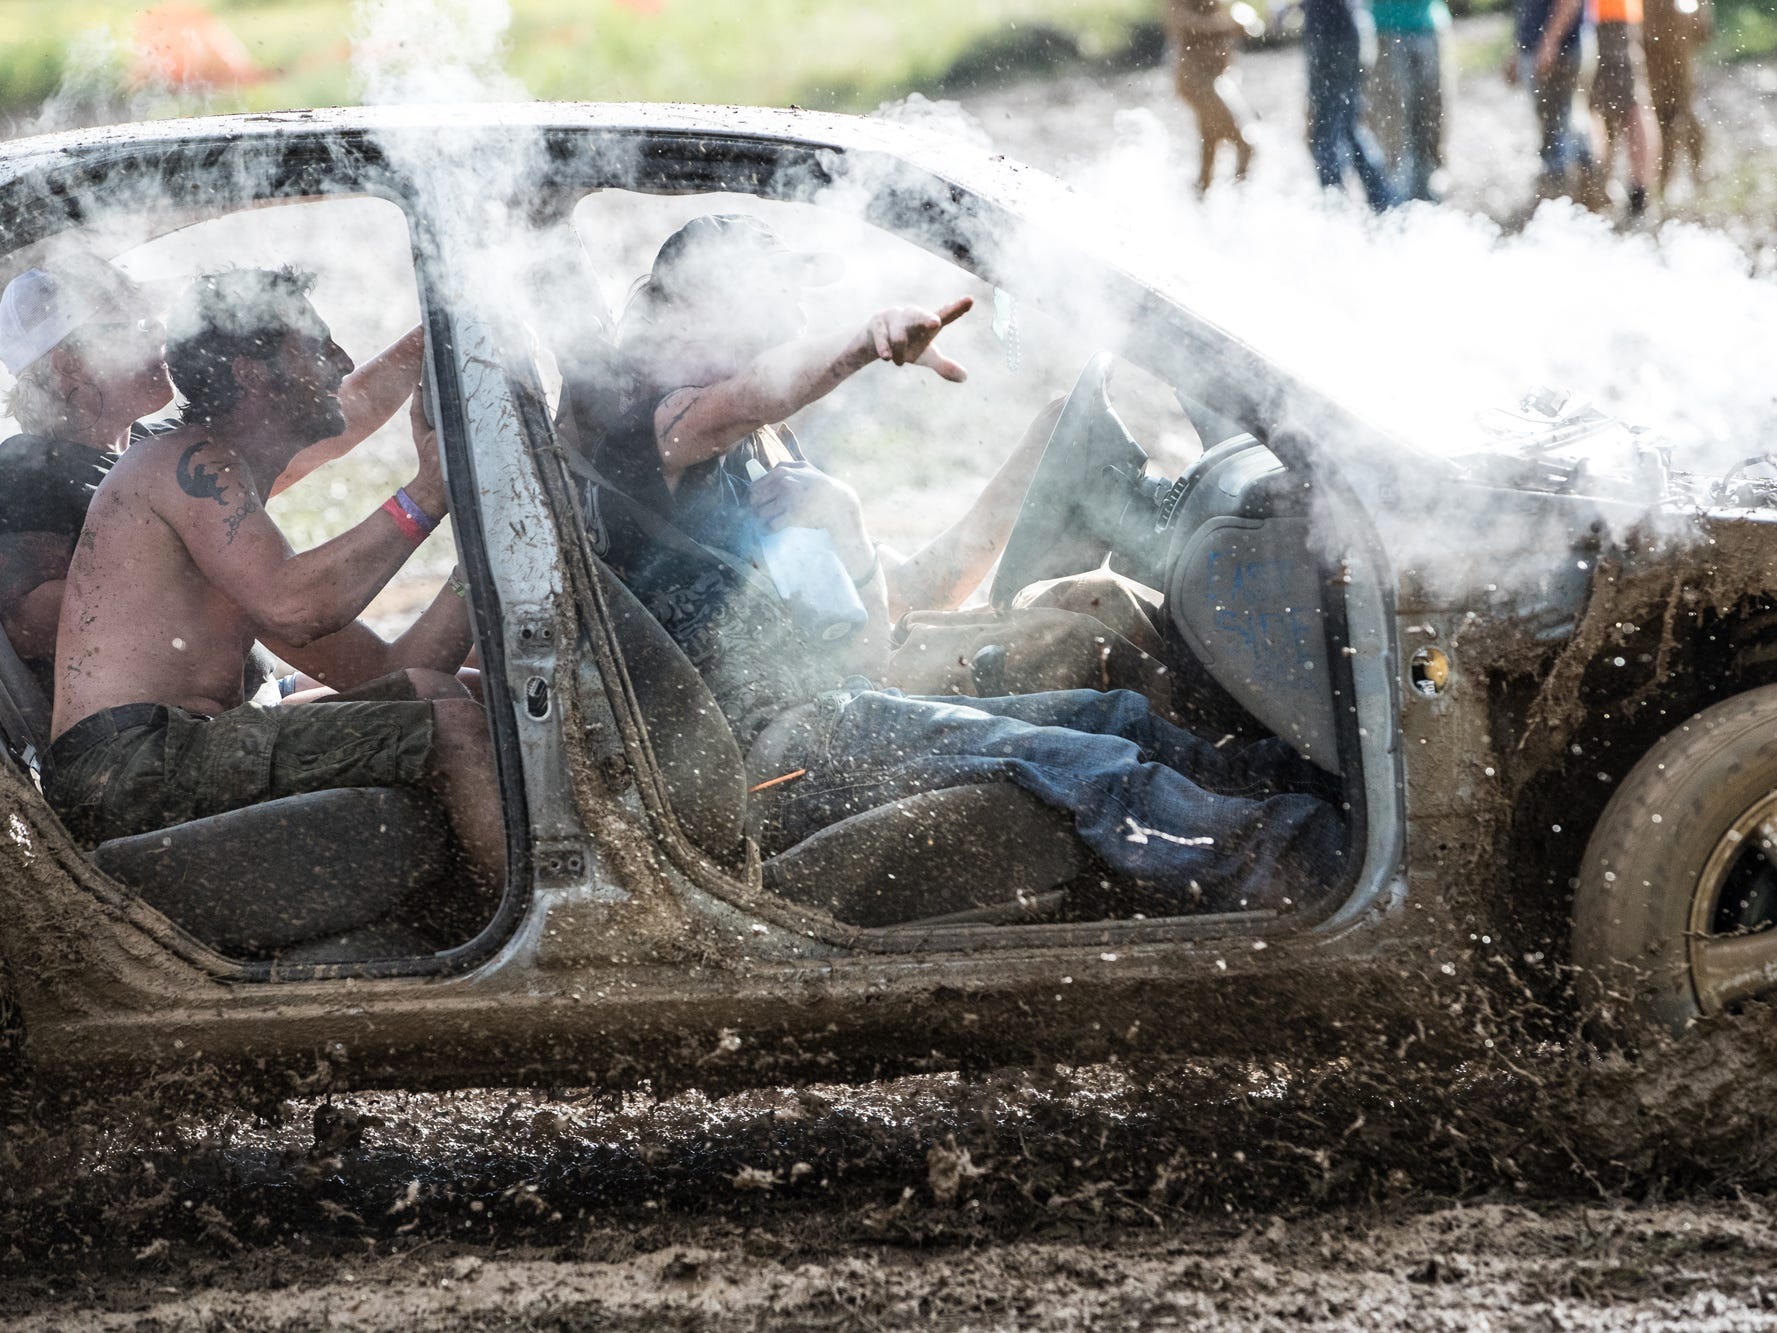 Four people take a small, torn down car through the mud pit during the Redneck Rave at BlackSwan Mudpit in Medora, Ind., on Friday, July 20, 2018.